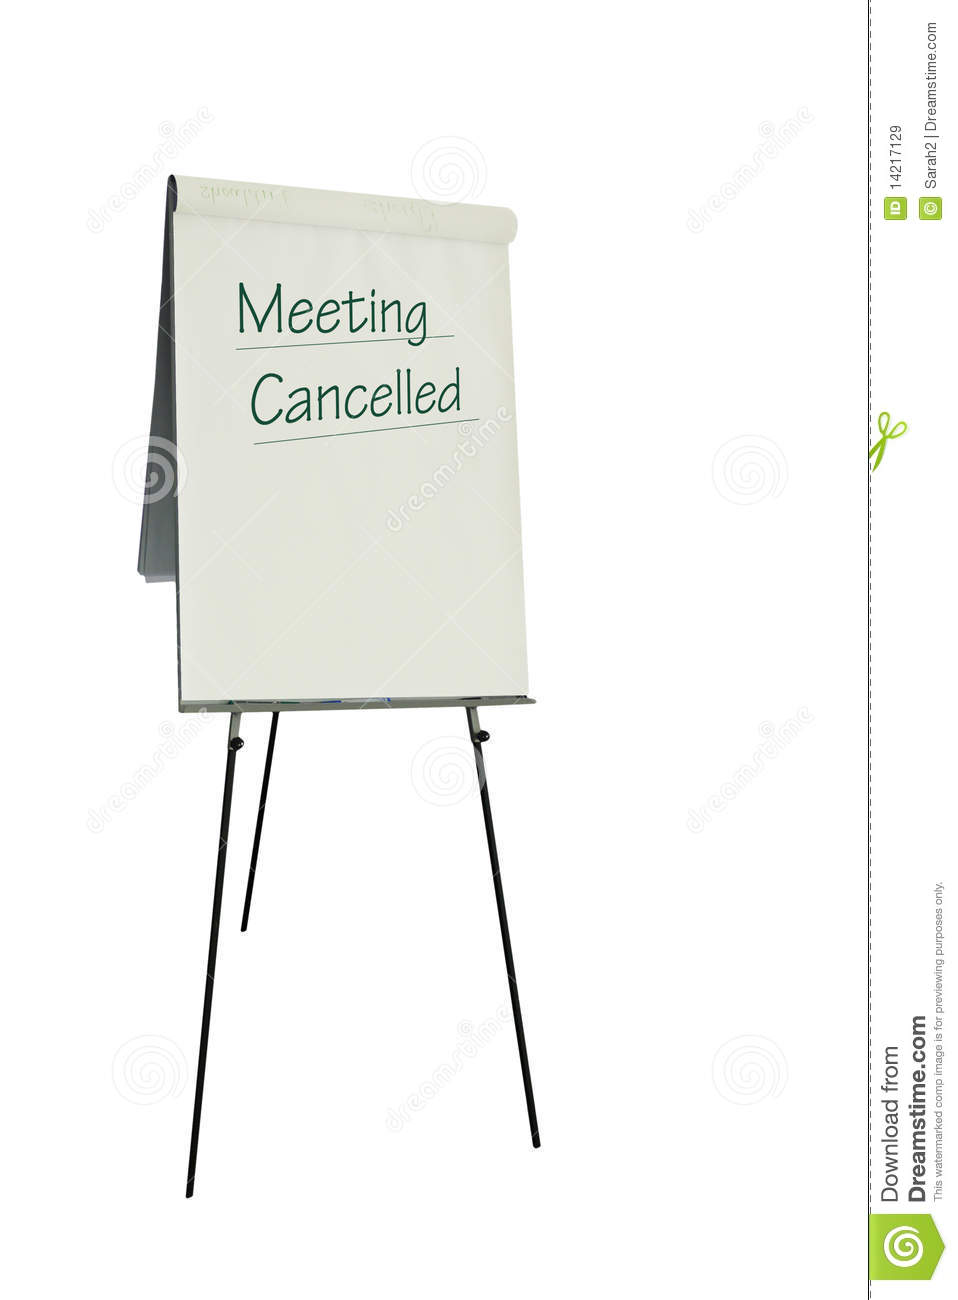 meeting cancelled royalty free stock images image 14217129